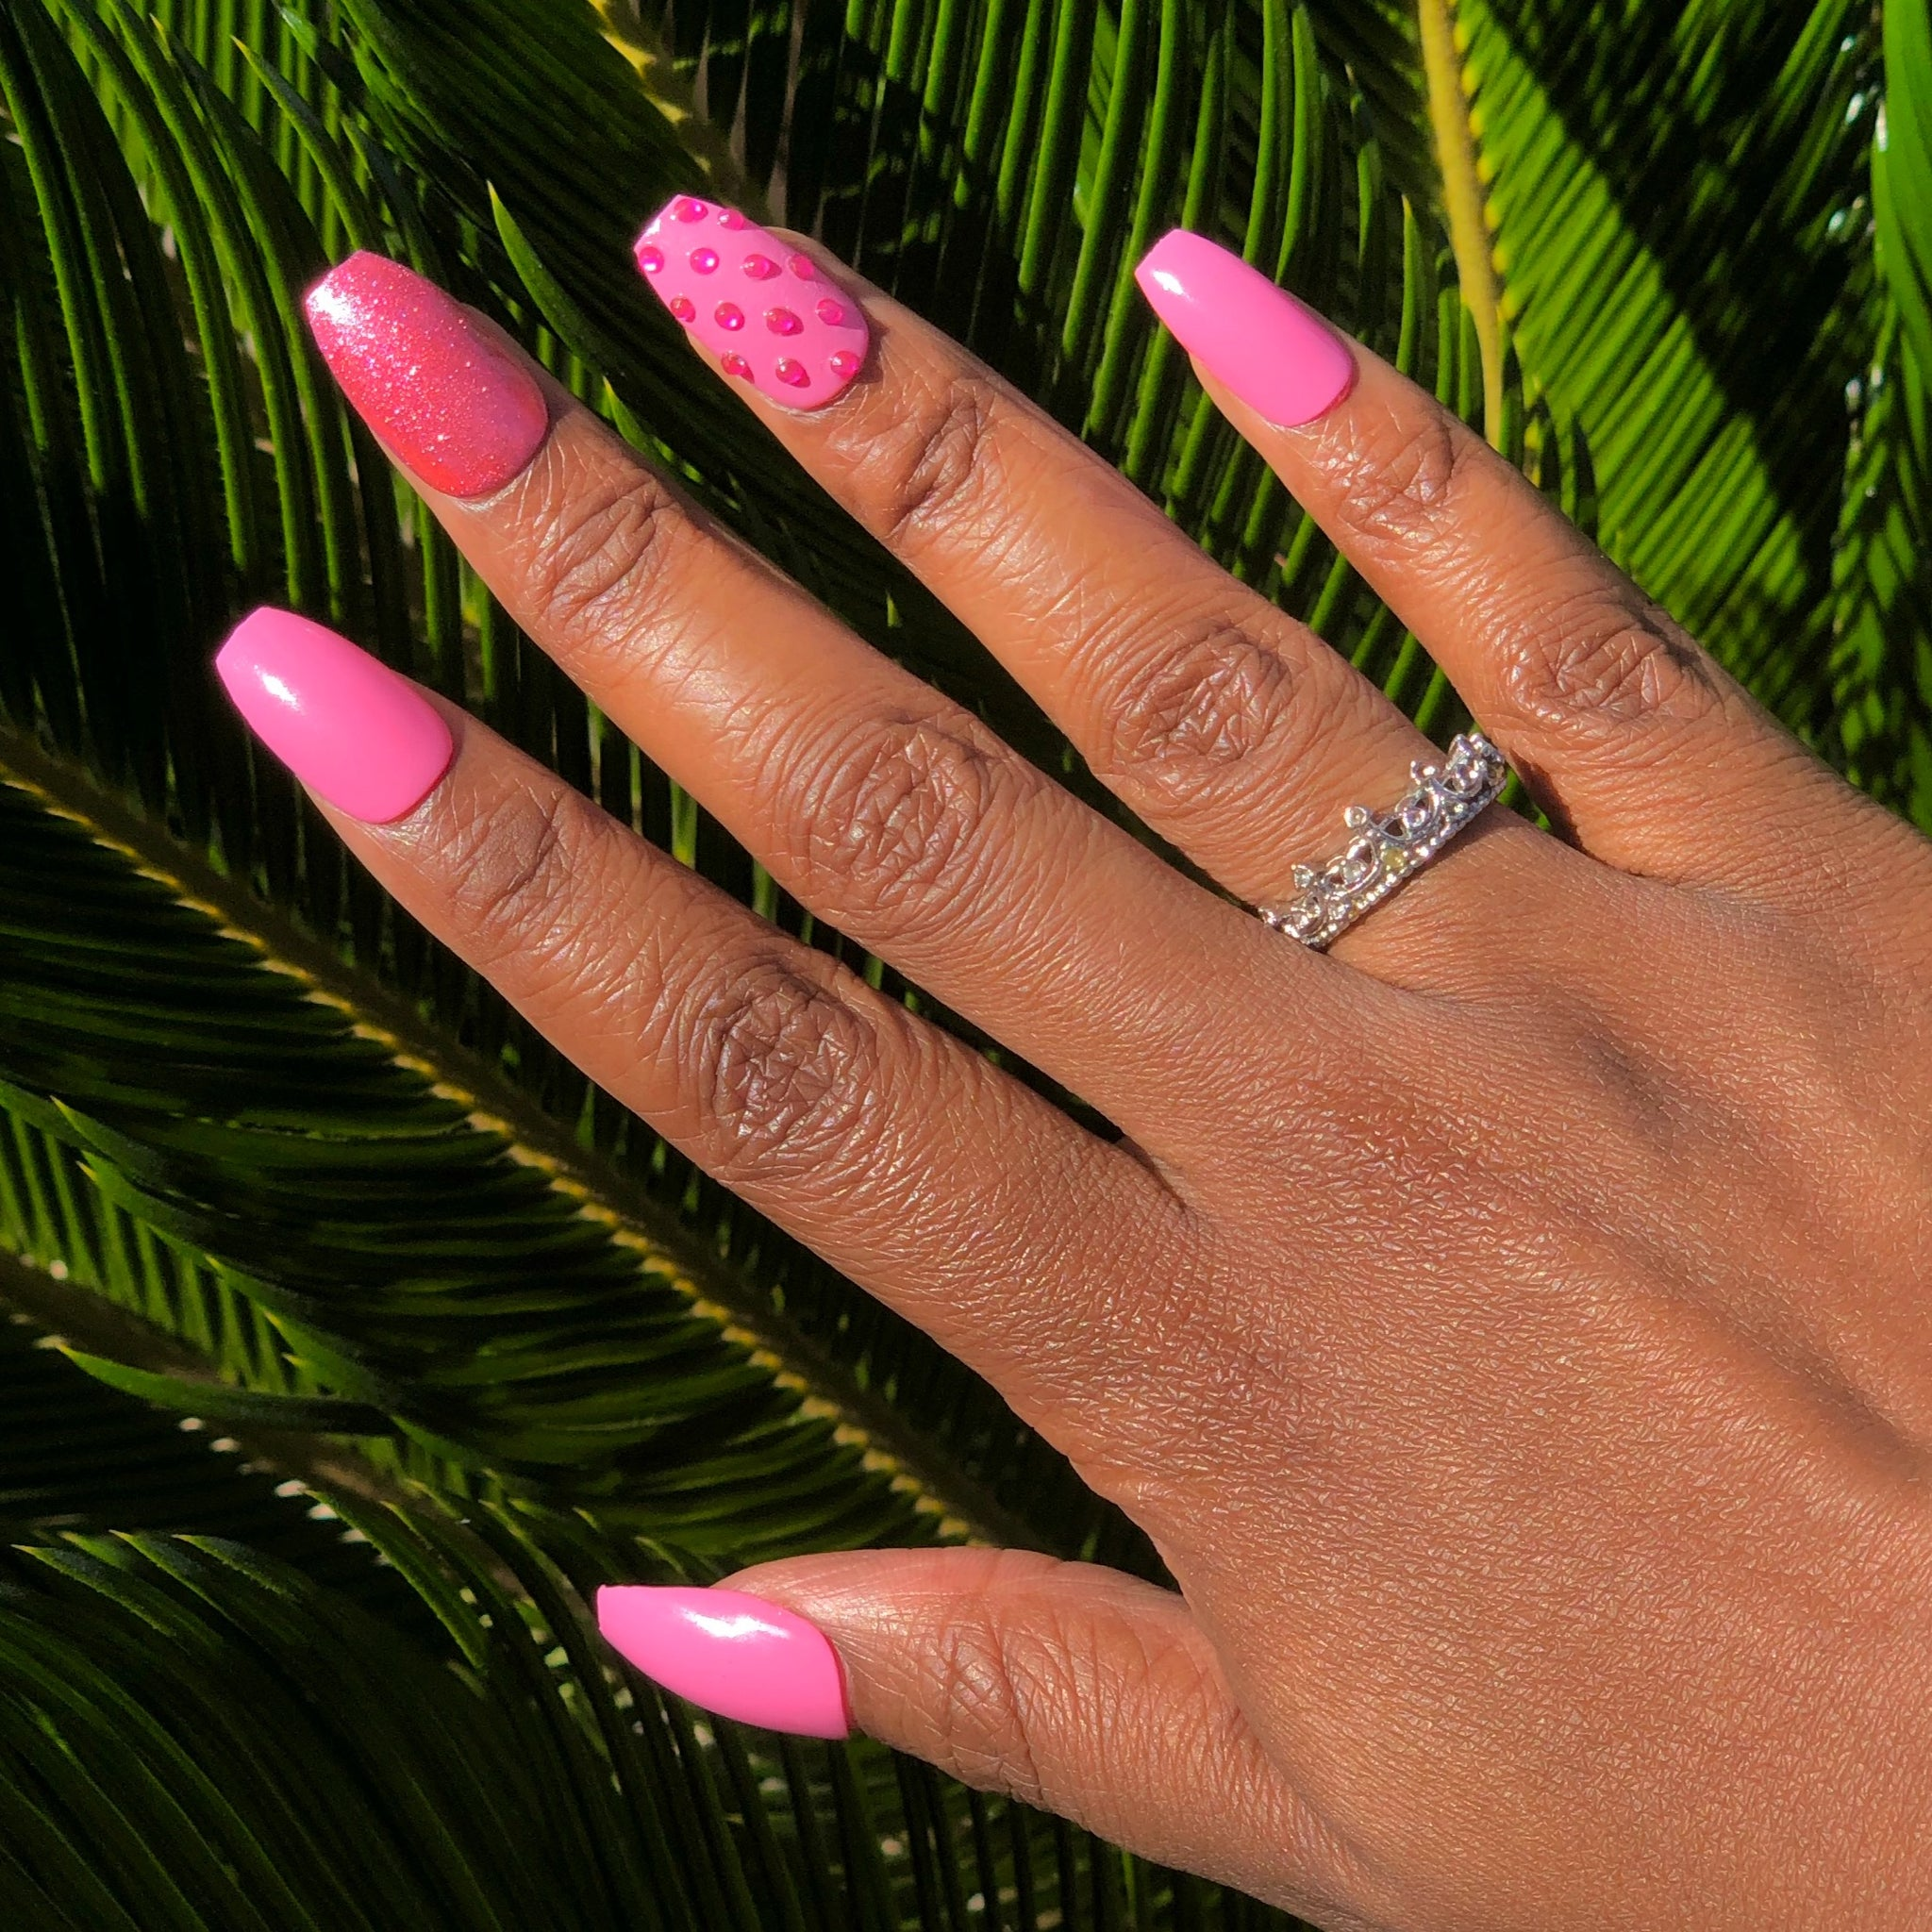 Manicure hand wearing pink nails with pink glitter on middle finger and pink rhinestones on ring finger.